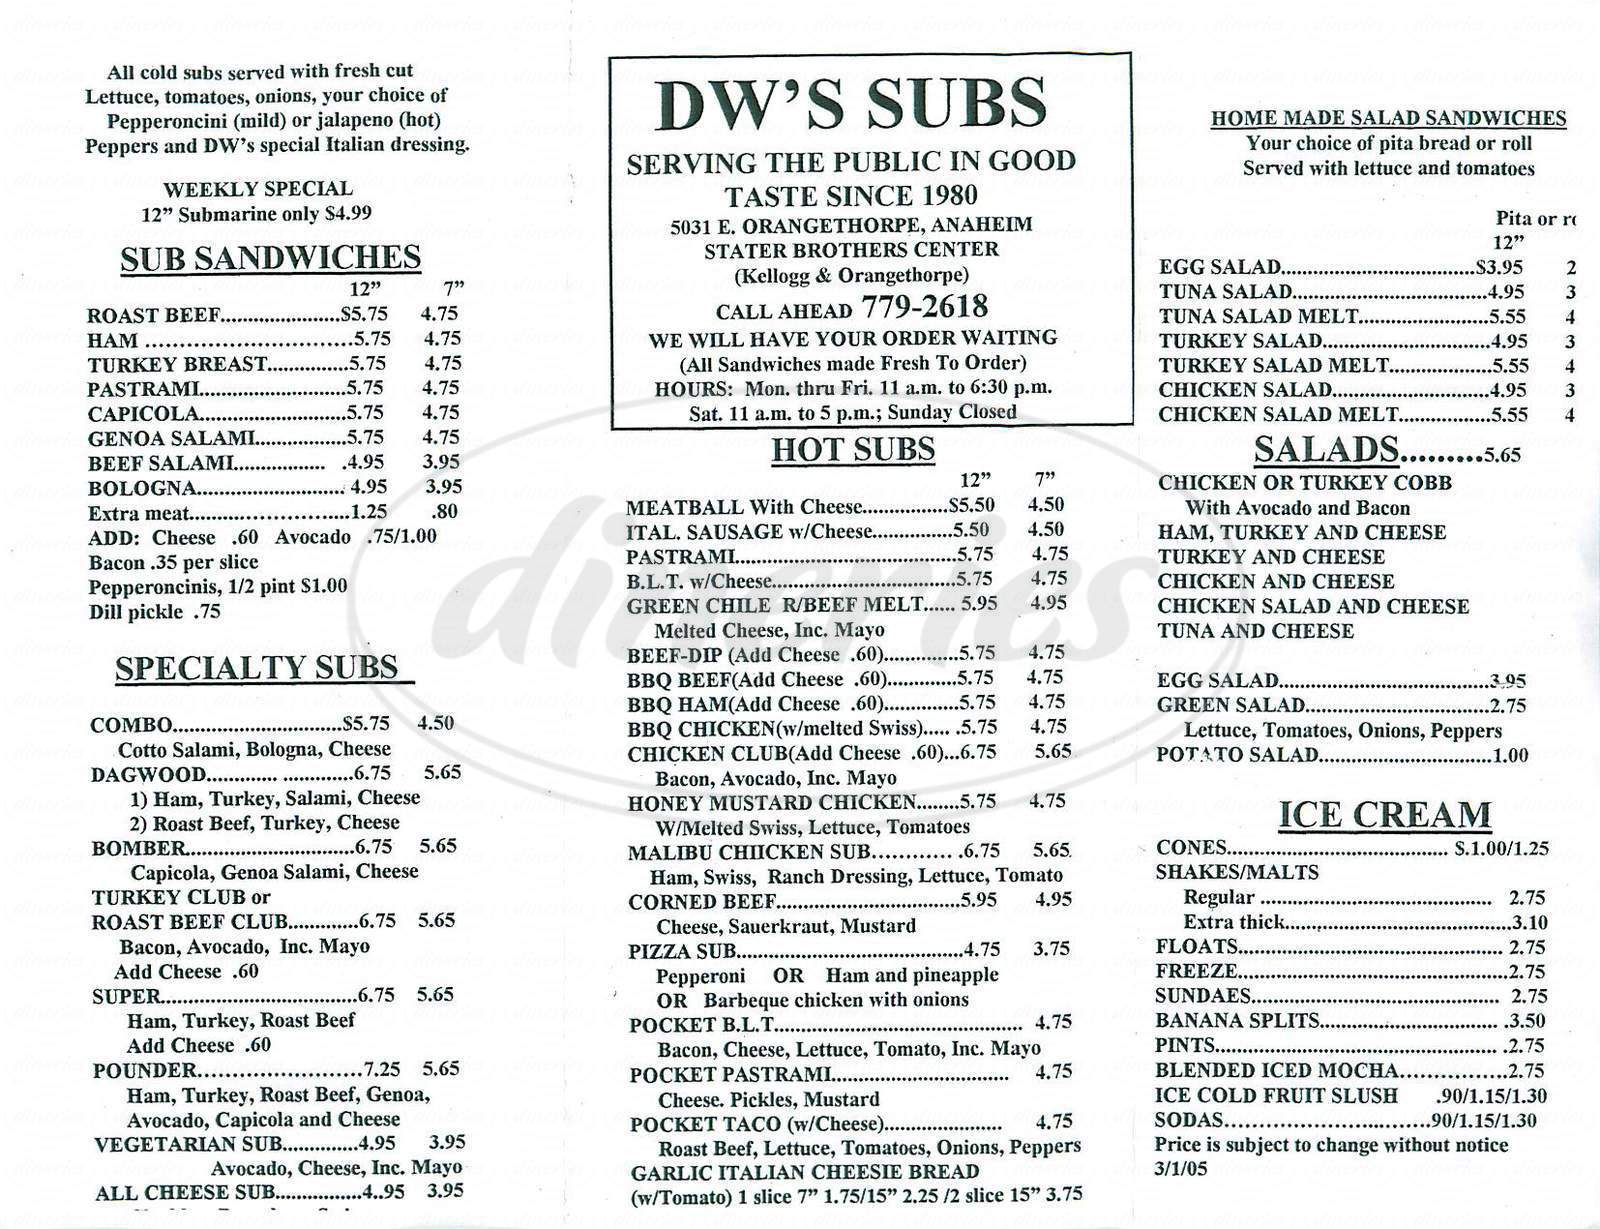 menu for DW's Subs